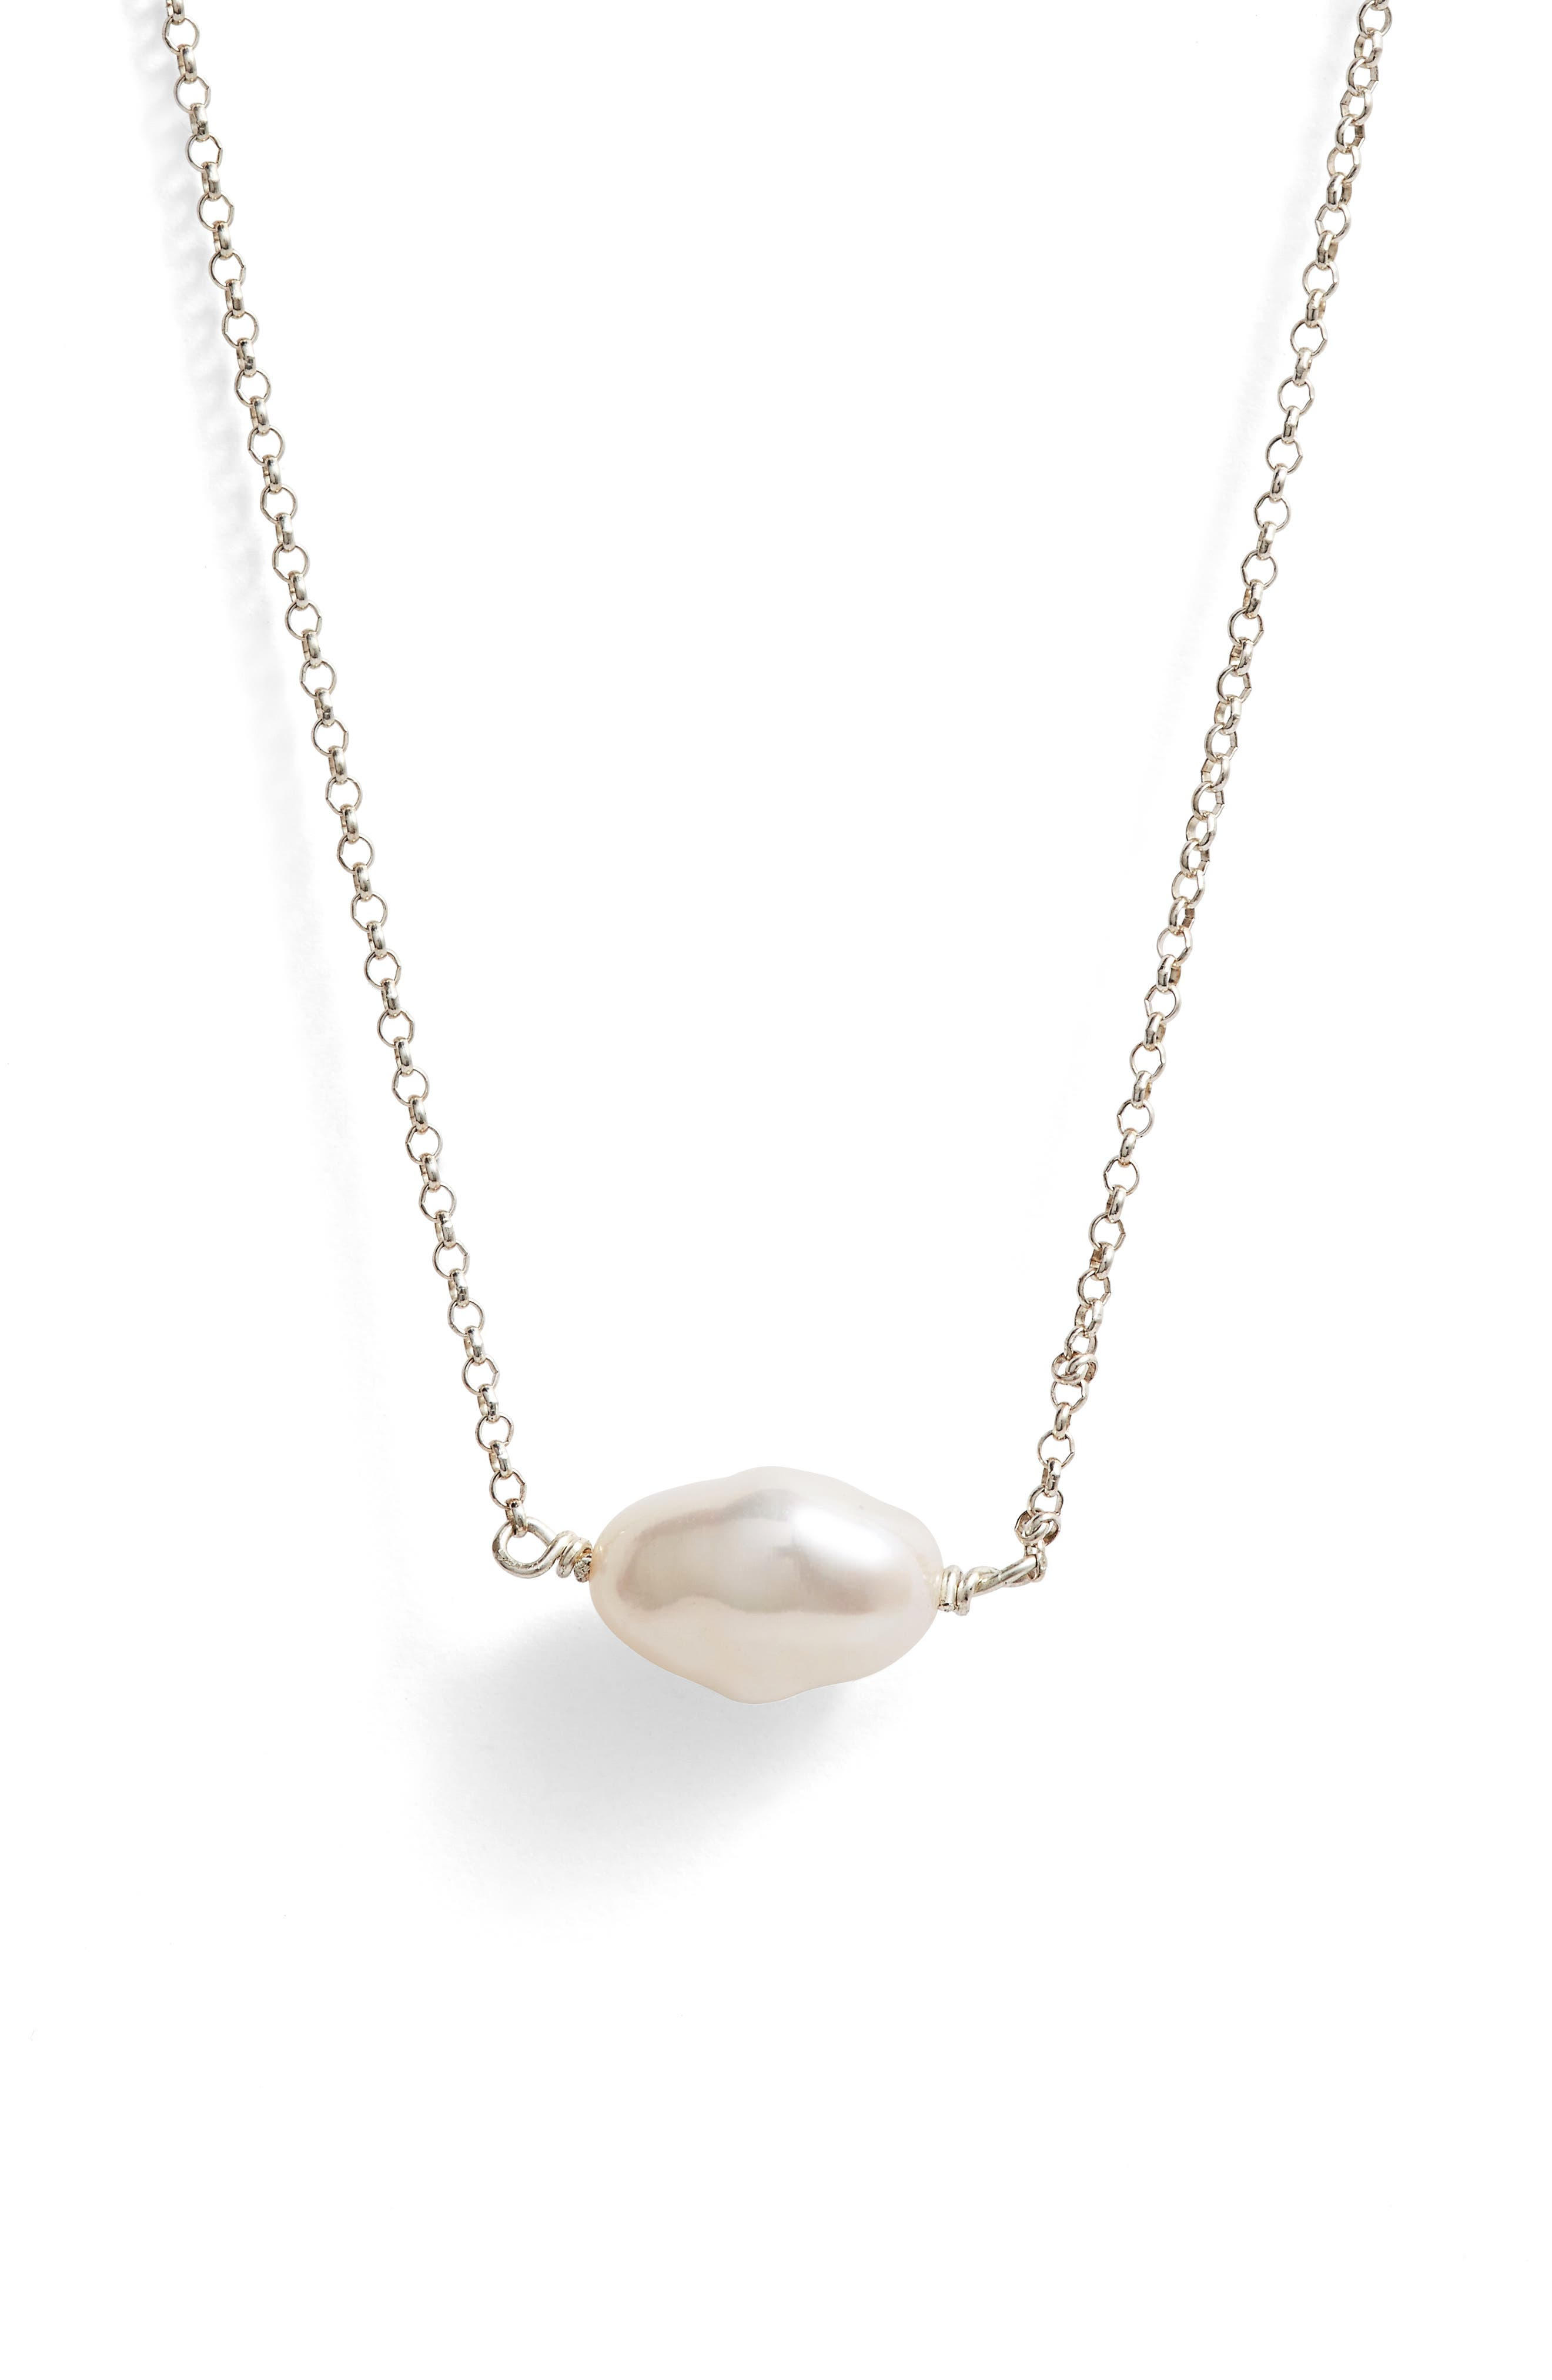 Keshi Cultured Pearl Necklace,                             Main thumbnail 1, color,                             STERLING WHITE PEARL